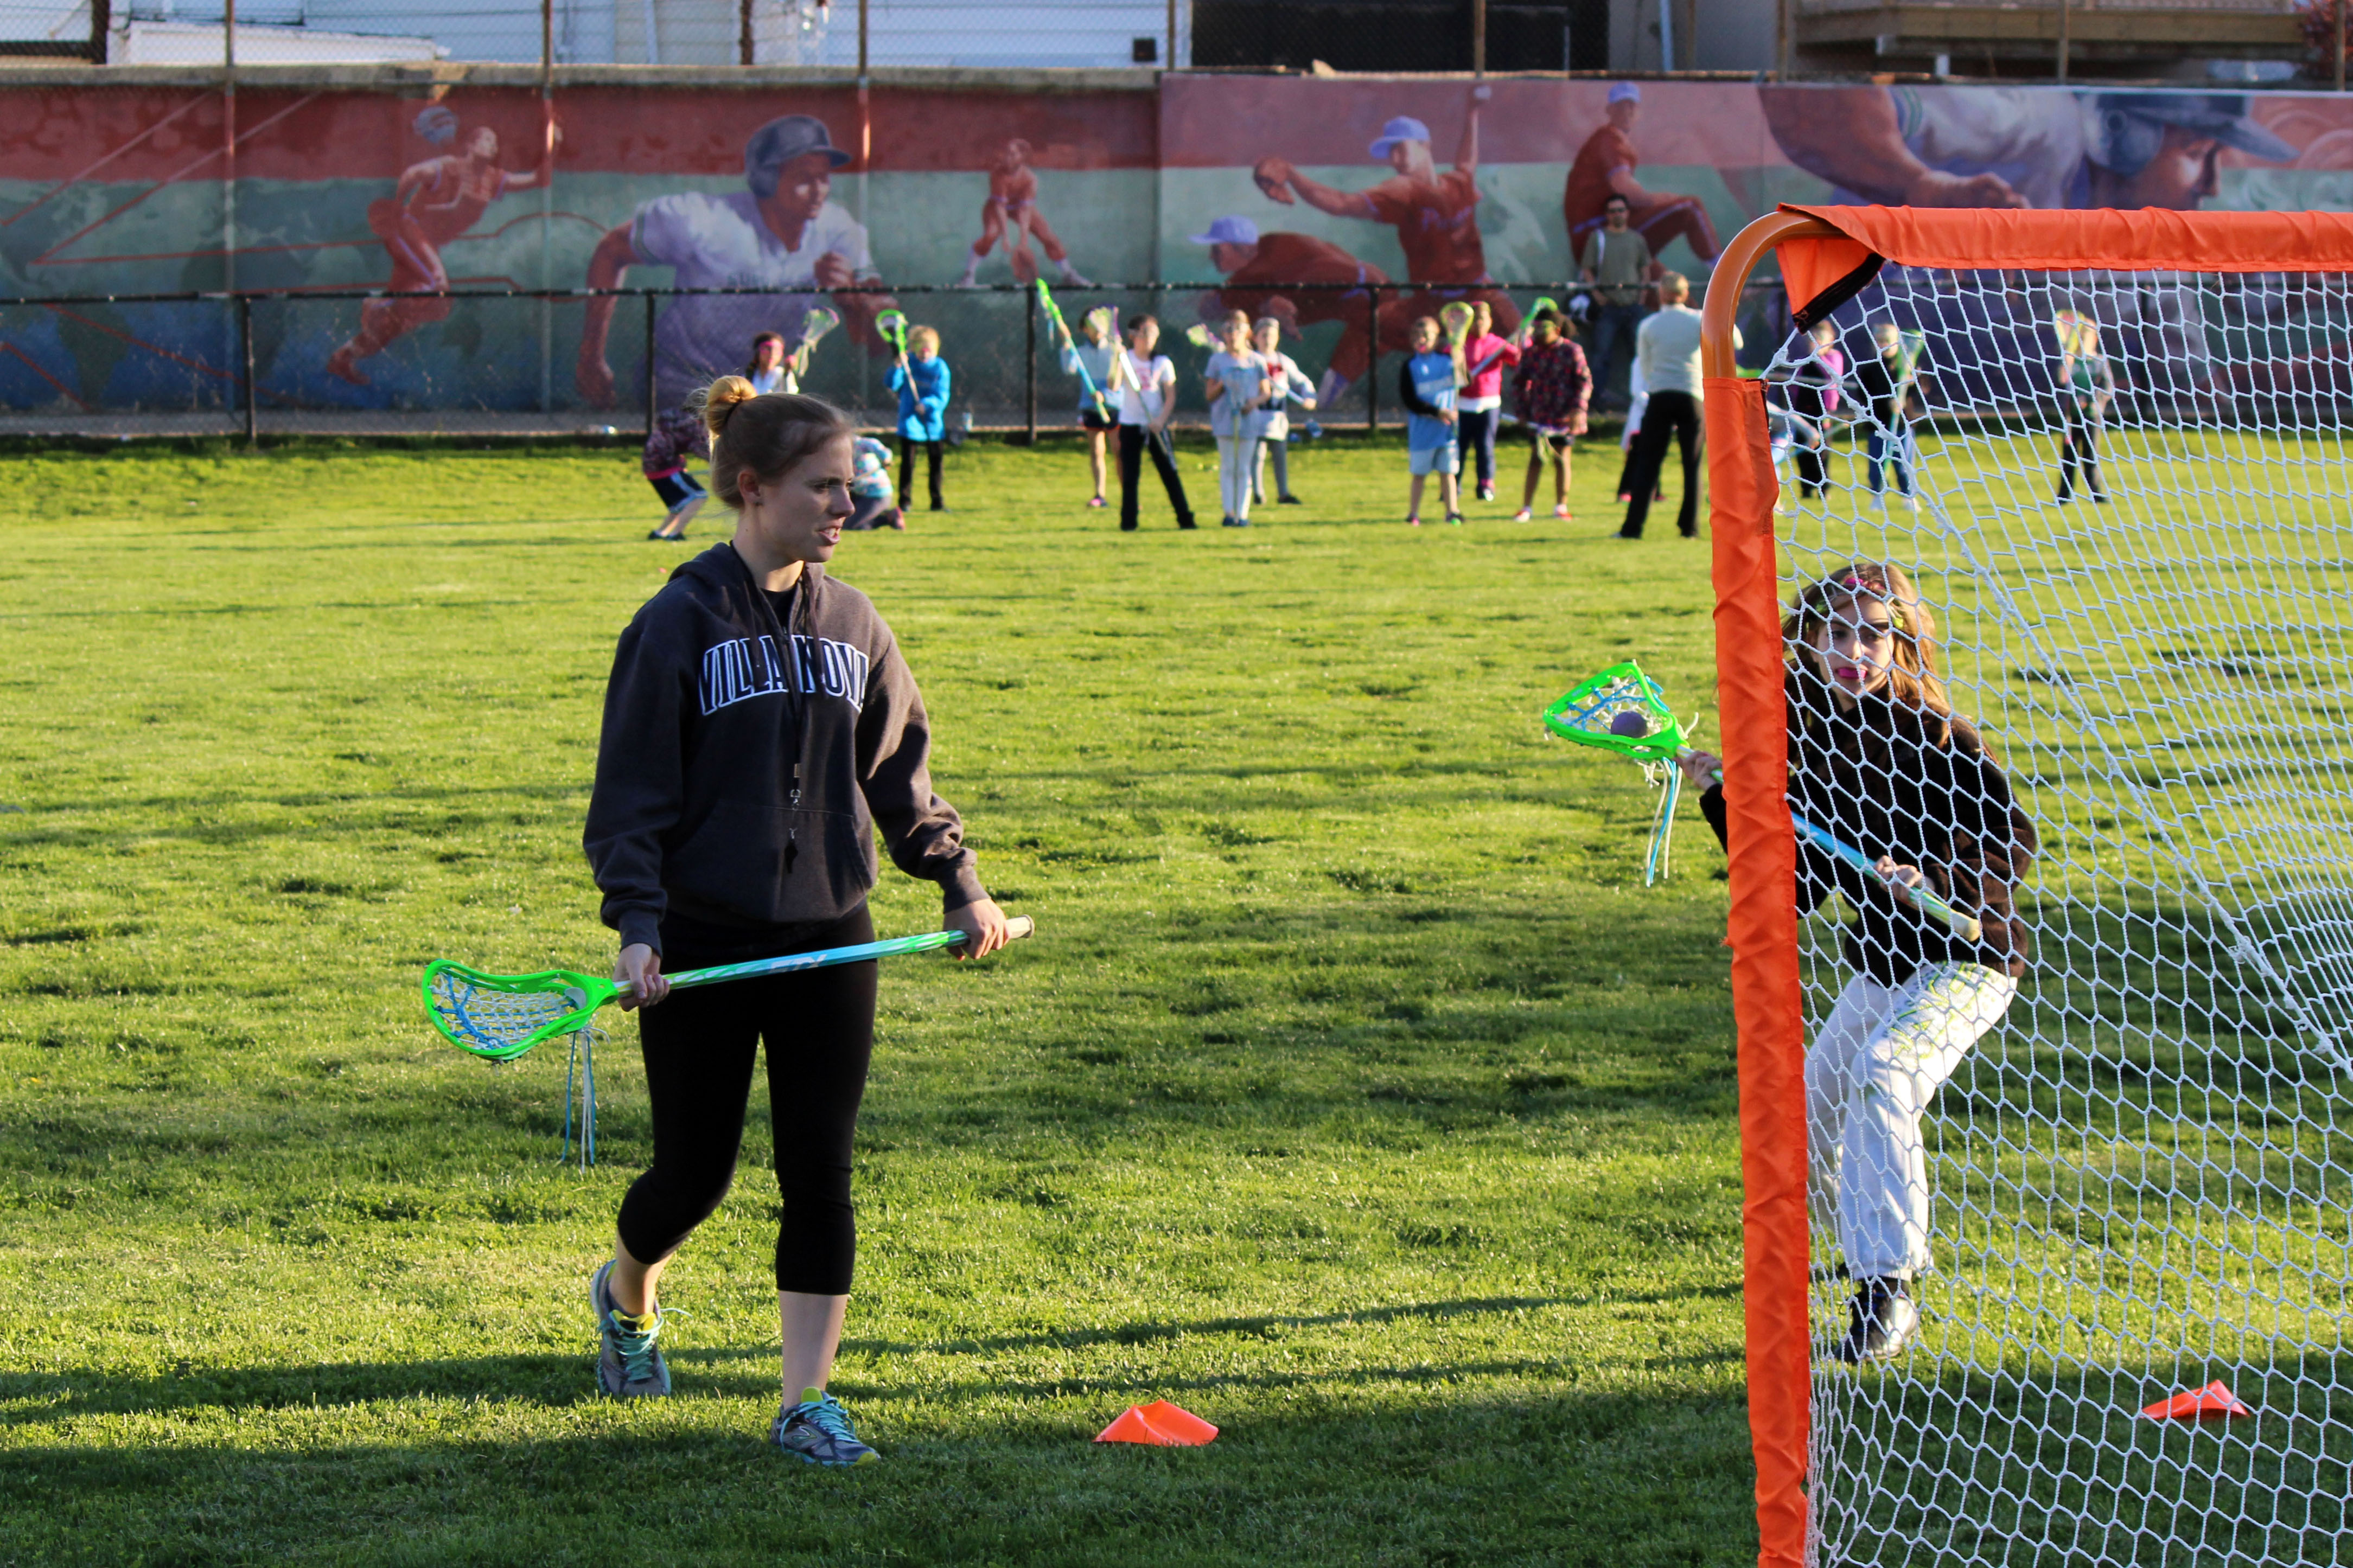 Jenna Allen, a lacrosse player from Villanova University, coaches the girls through a shooting drill.